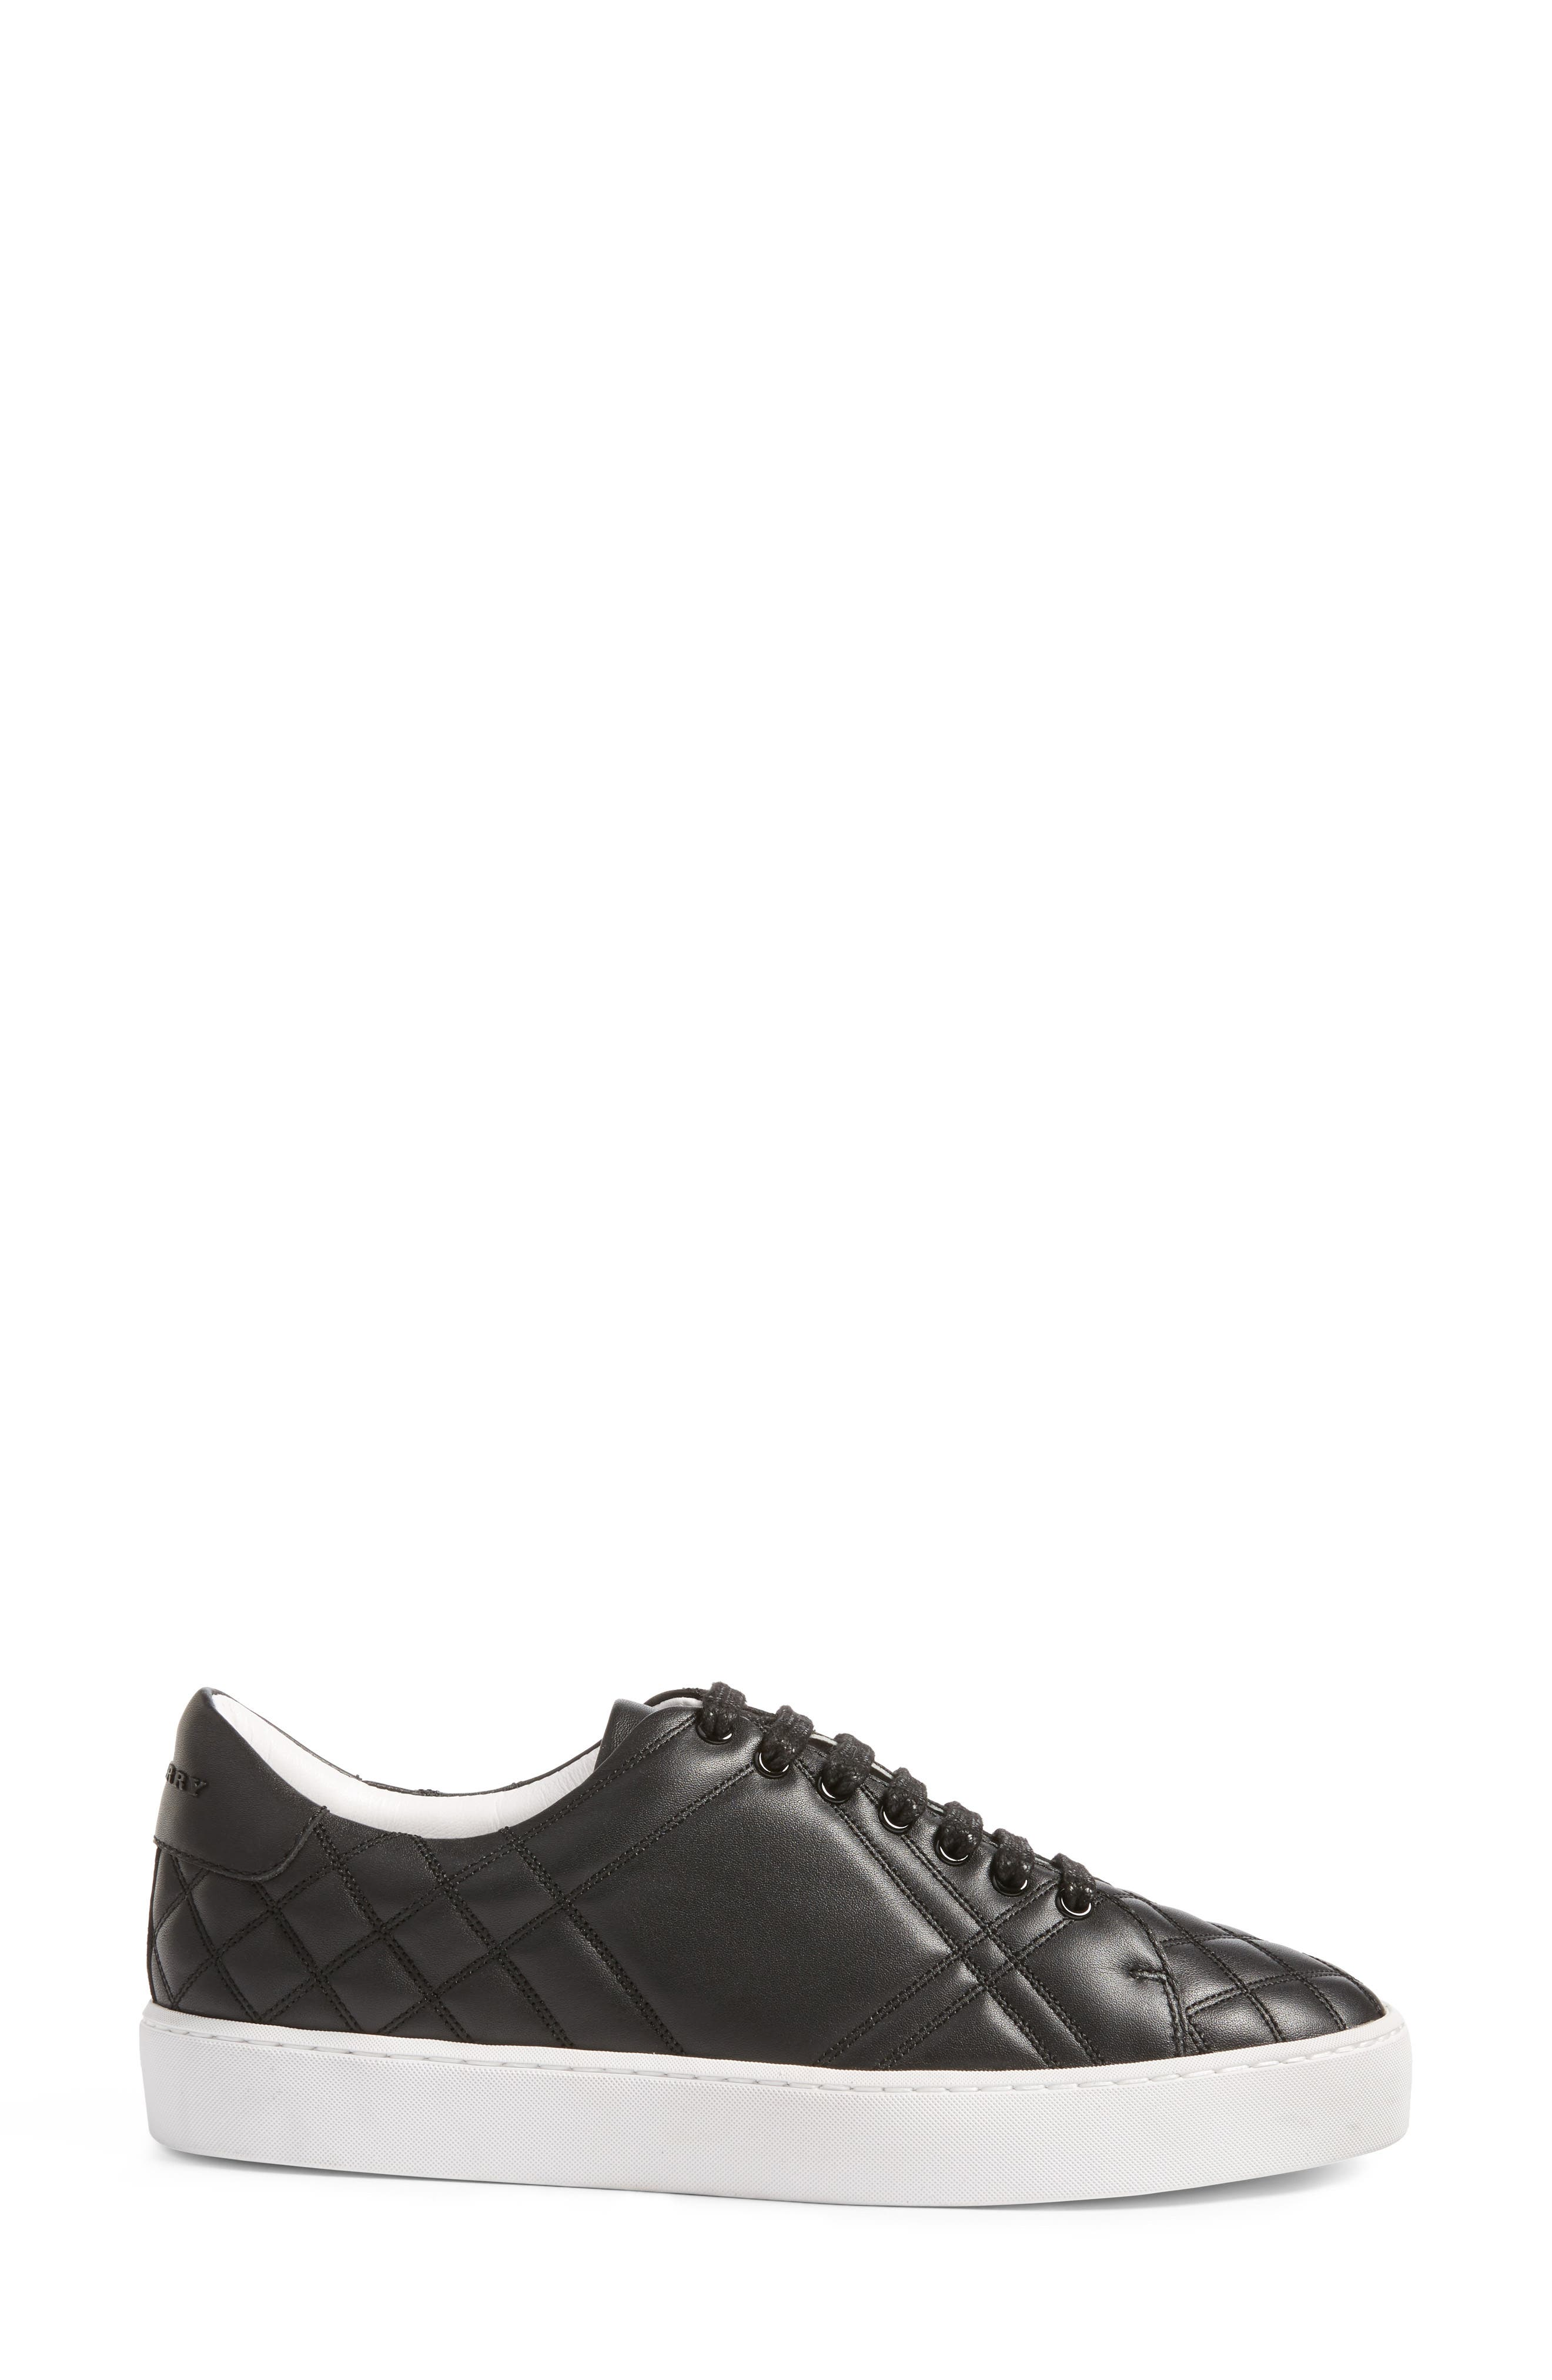 Alternate Image 3  - Burberry Check Quilted Leather Sneaker (Women)